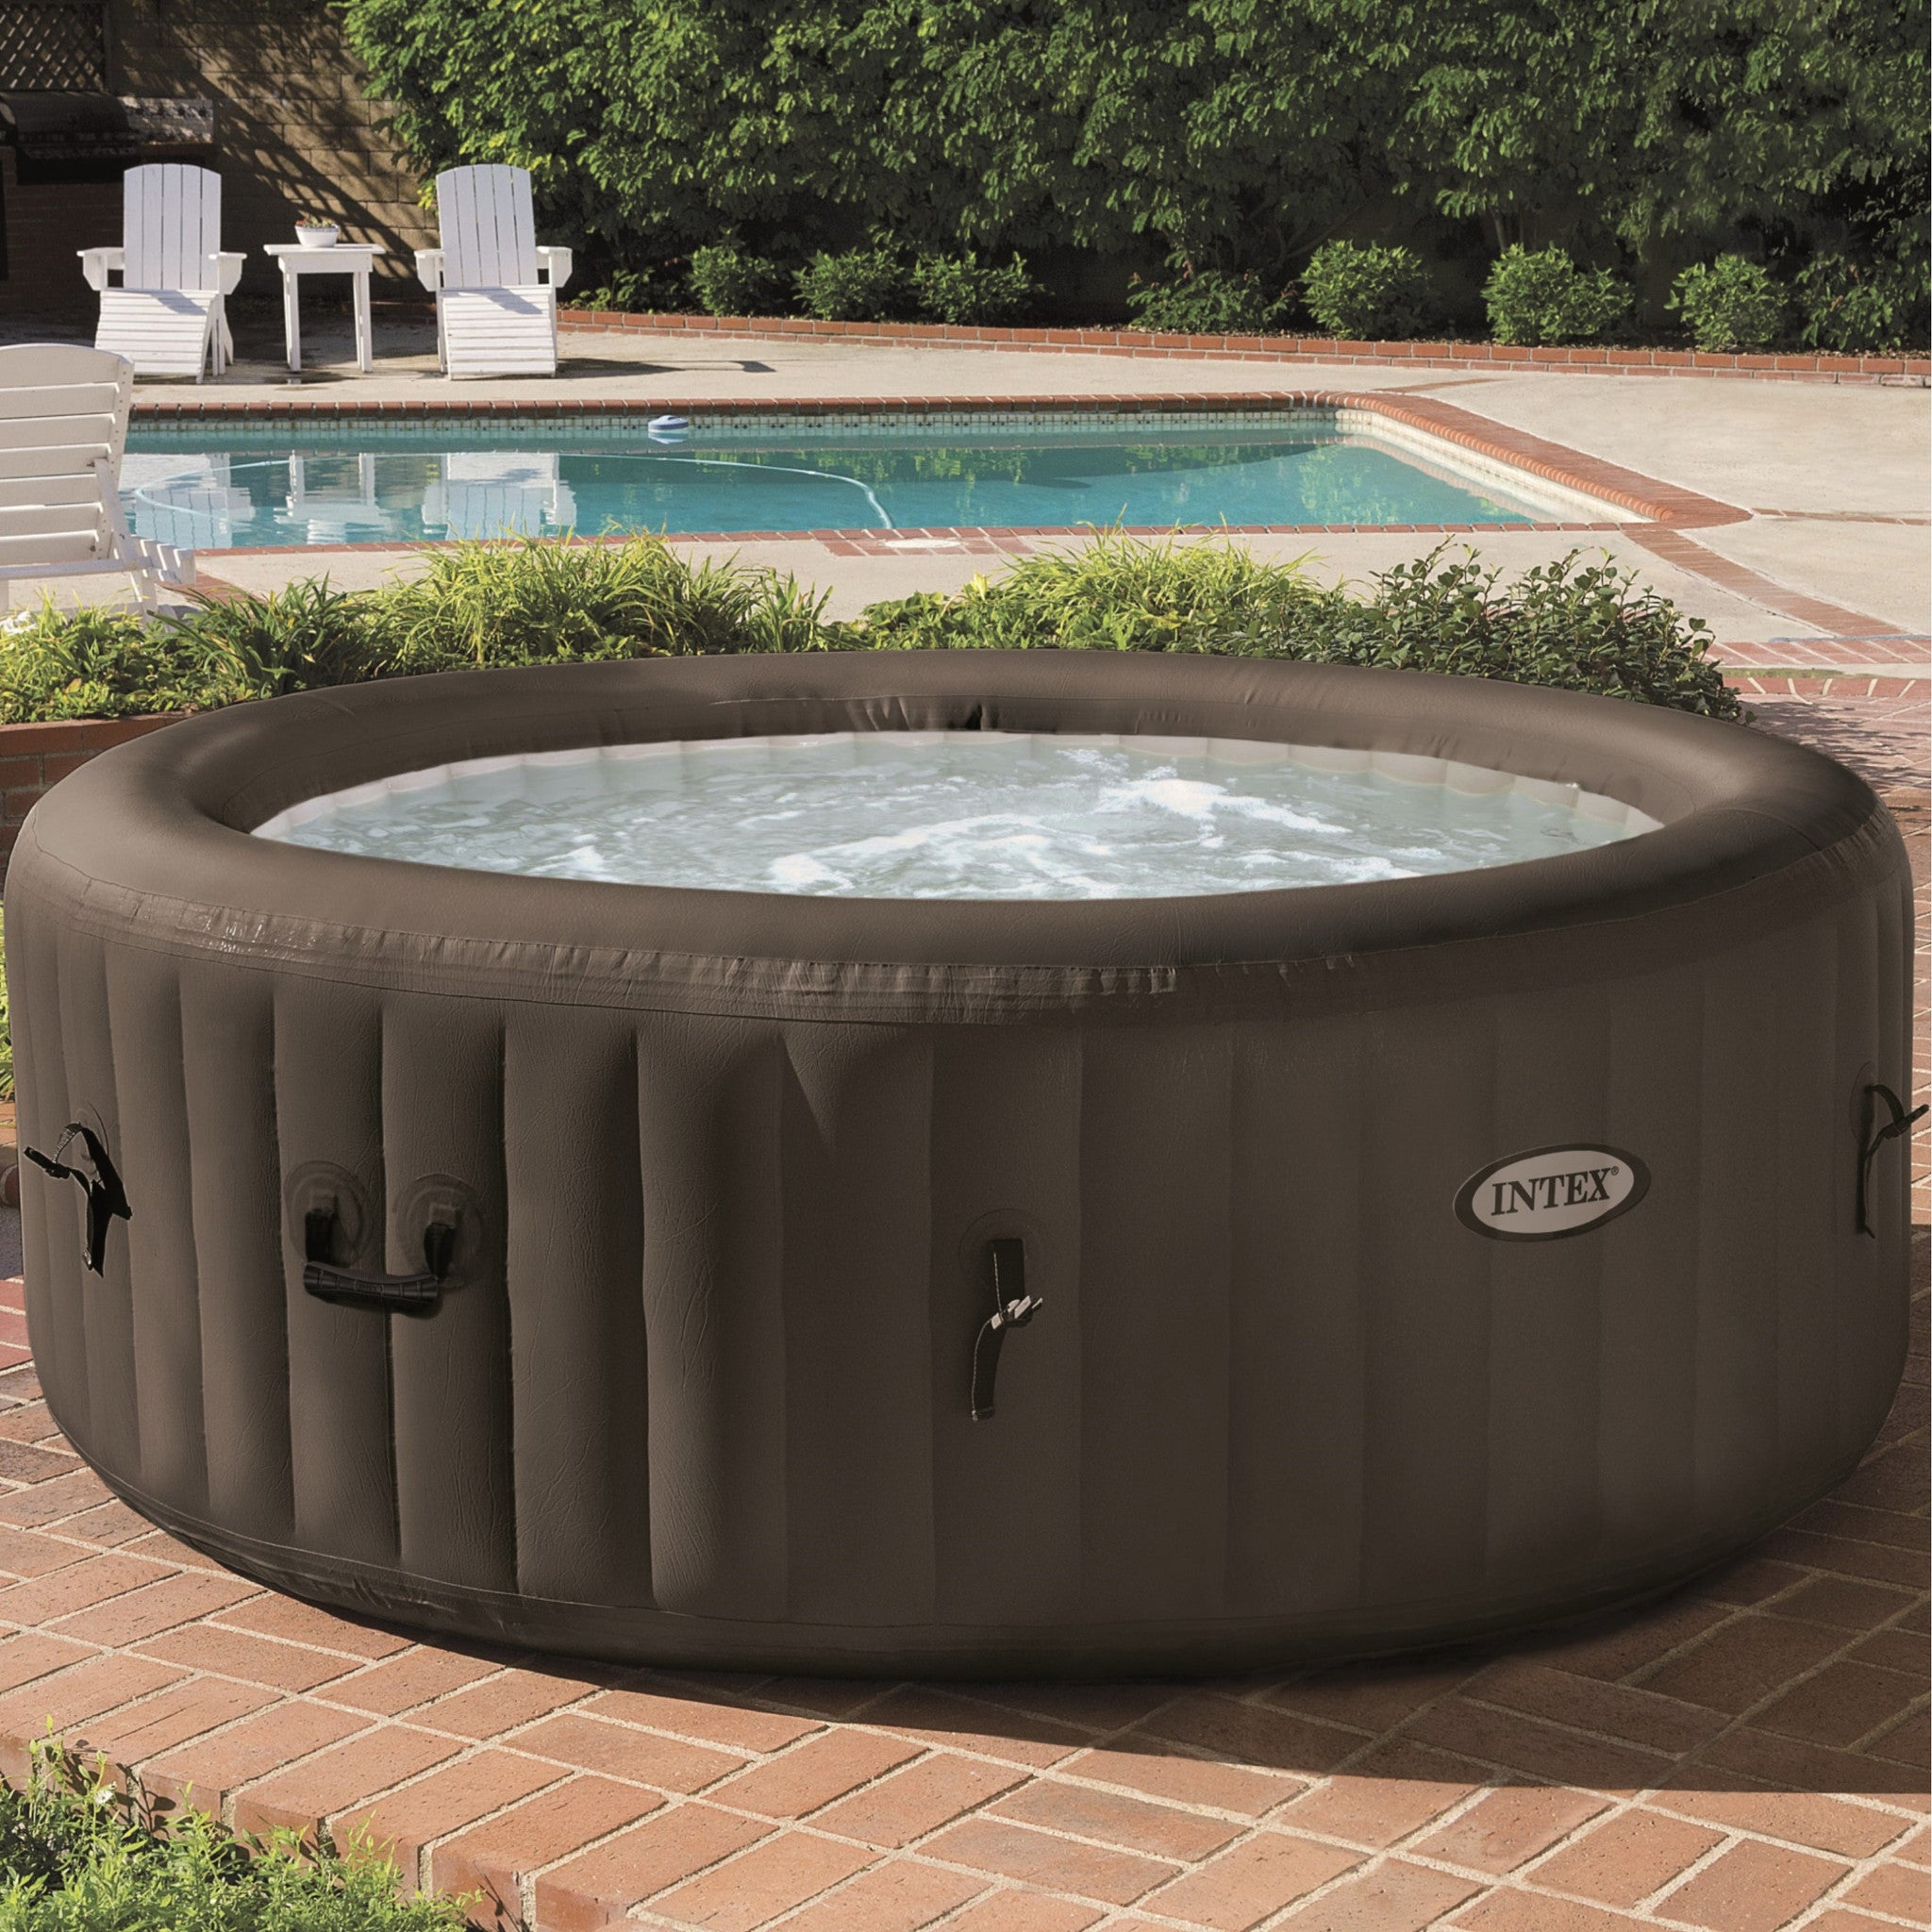 intex purespa jet massage inflatable hot tub. Black Bedroom Furniture Sets. Home Design Ideas